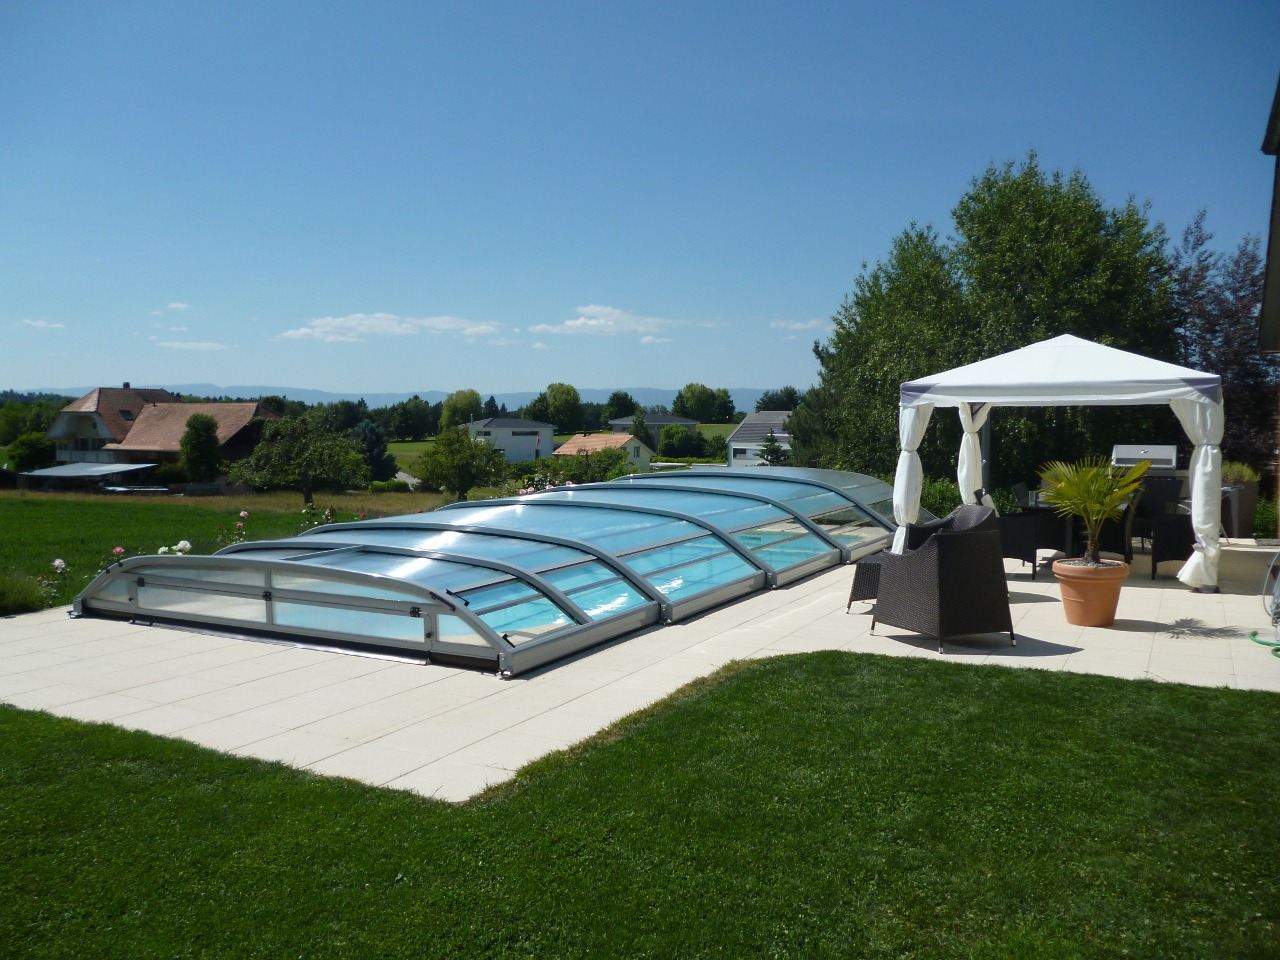 Elitys ansea abri de piscine bas t lescopique ec 39 creation - Abri piscine desjoyaux vitry sur seine ...